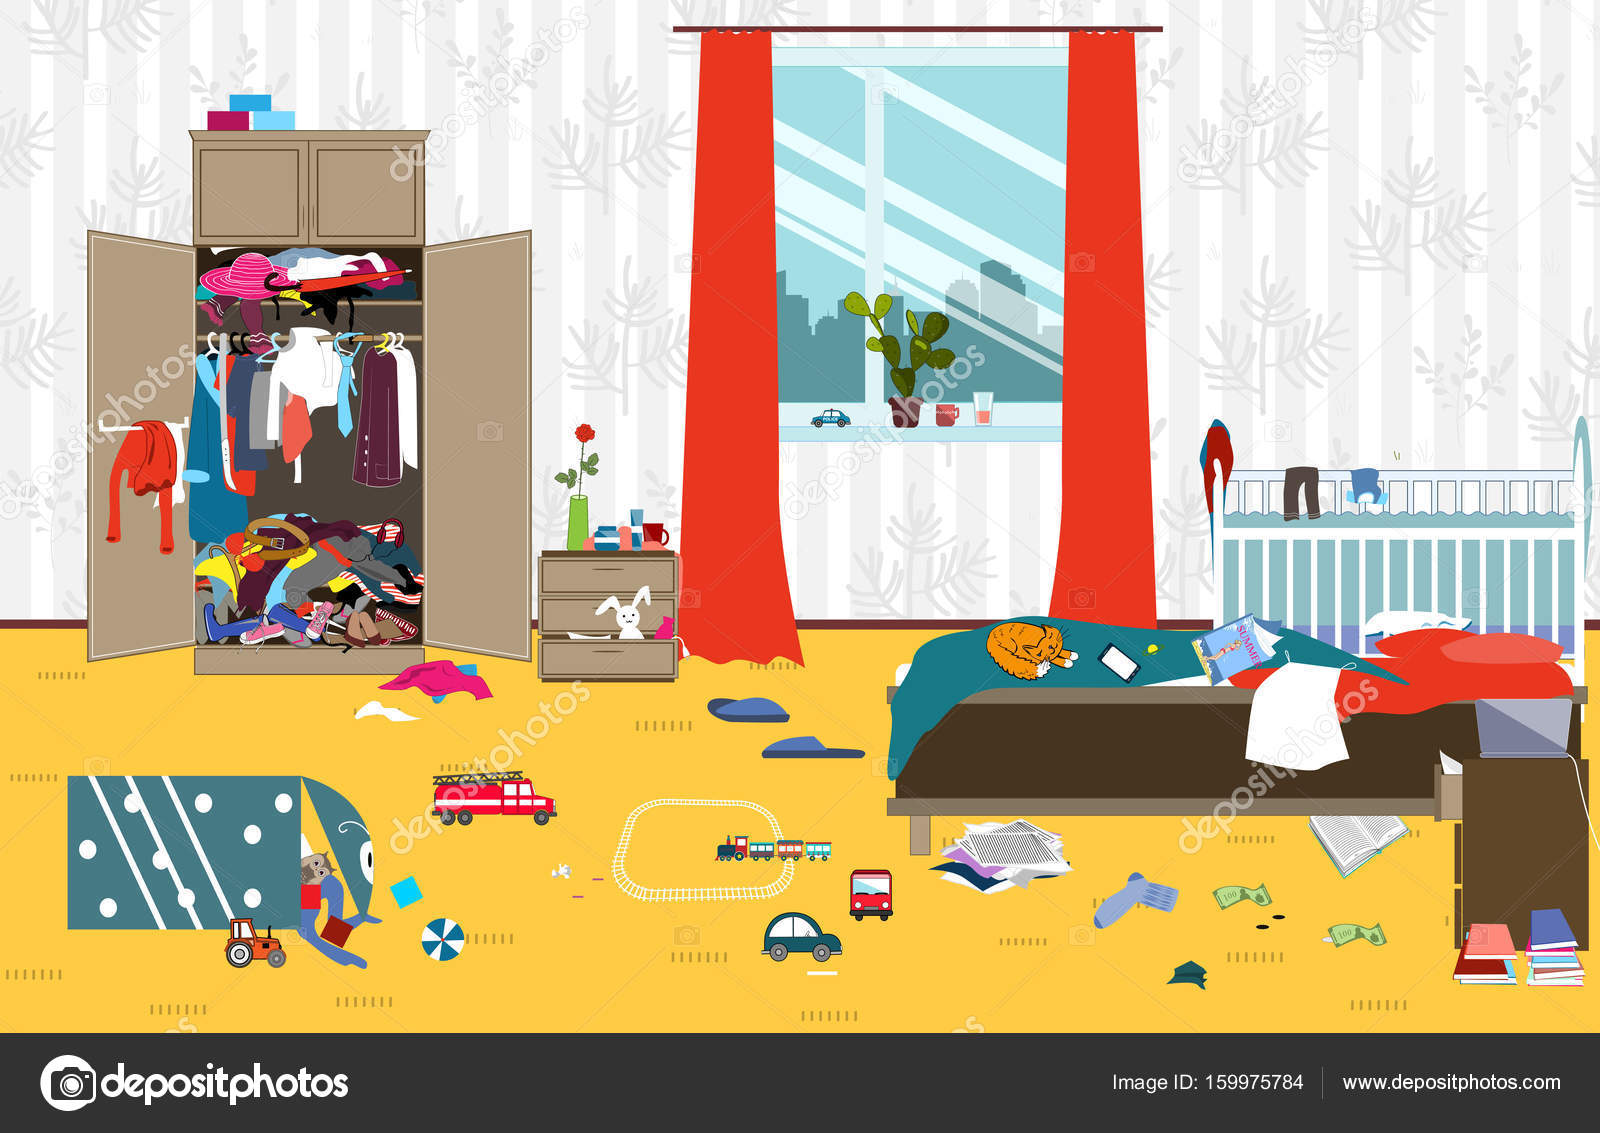 Messy room where young family with little baby lives